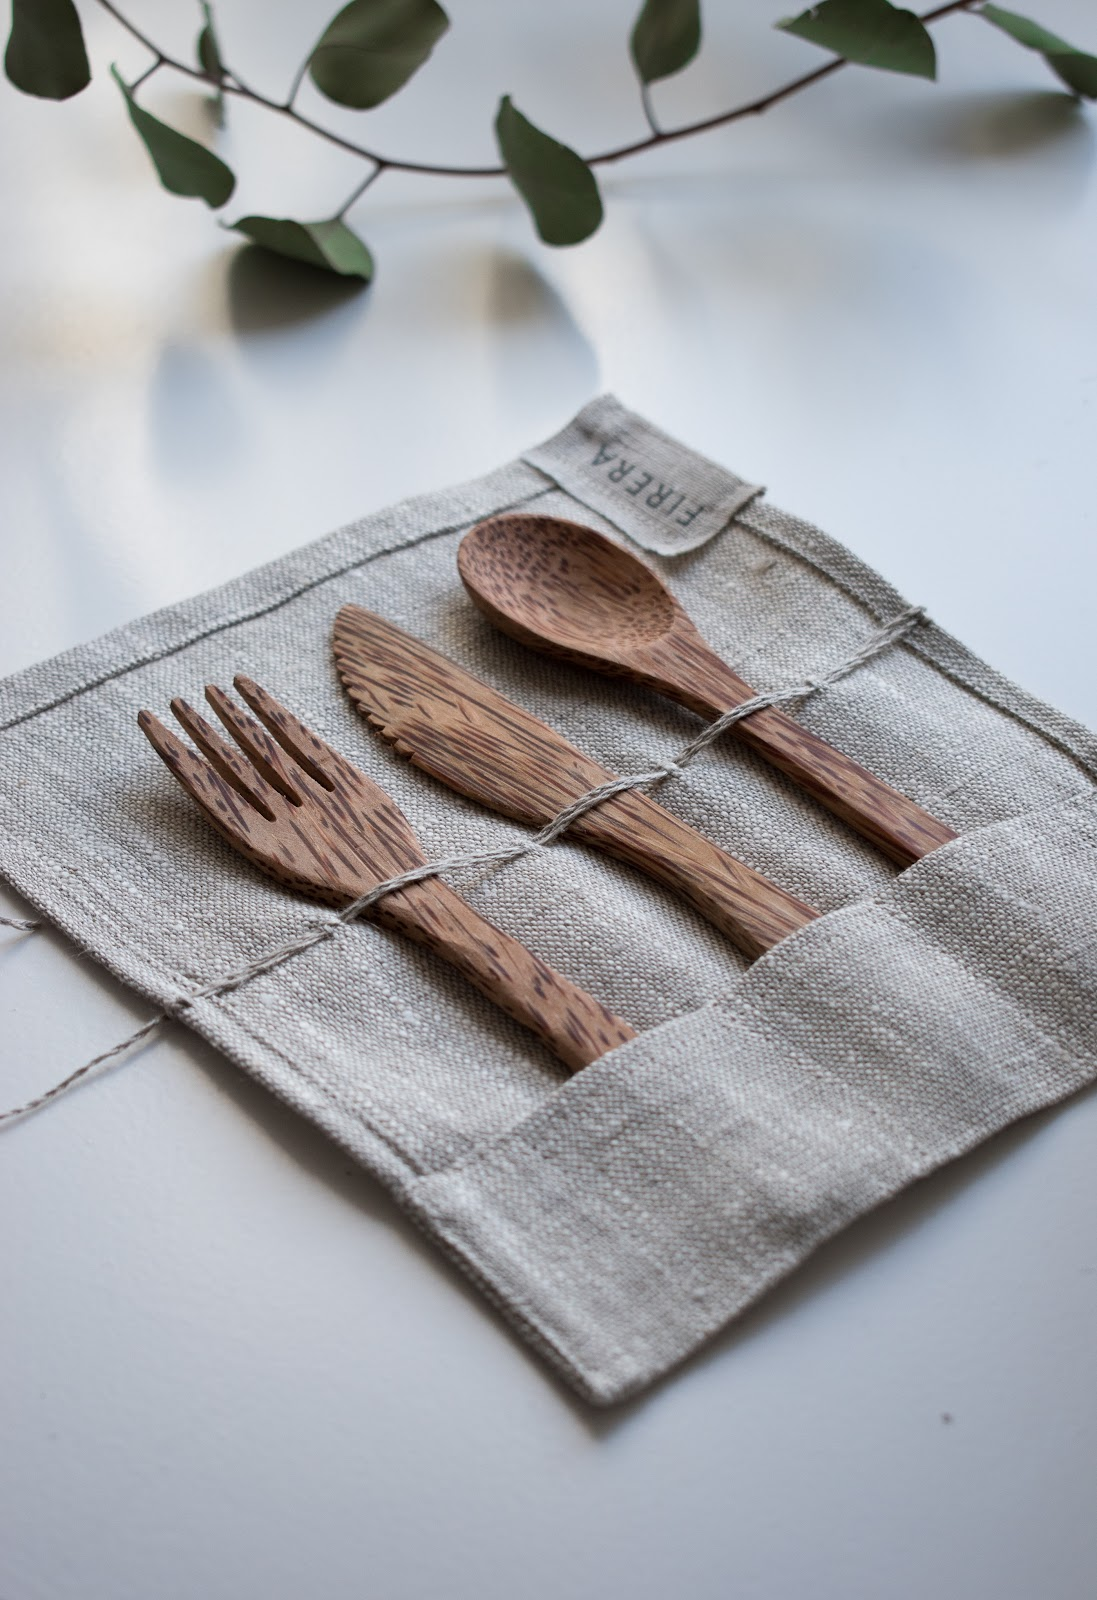 Wooden reusable utensils, fork, knife, and spoon, placed on a table. Reduce waste by bringing your own cutlery